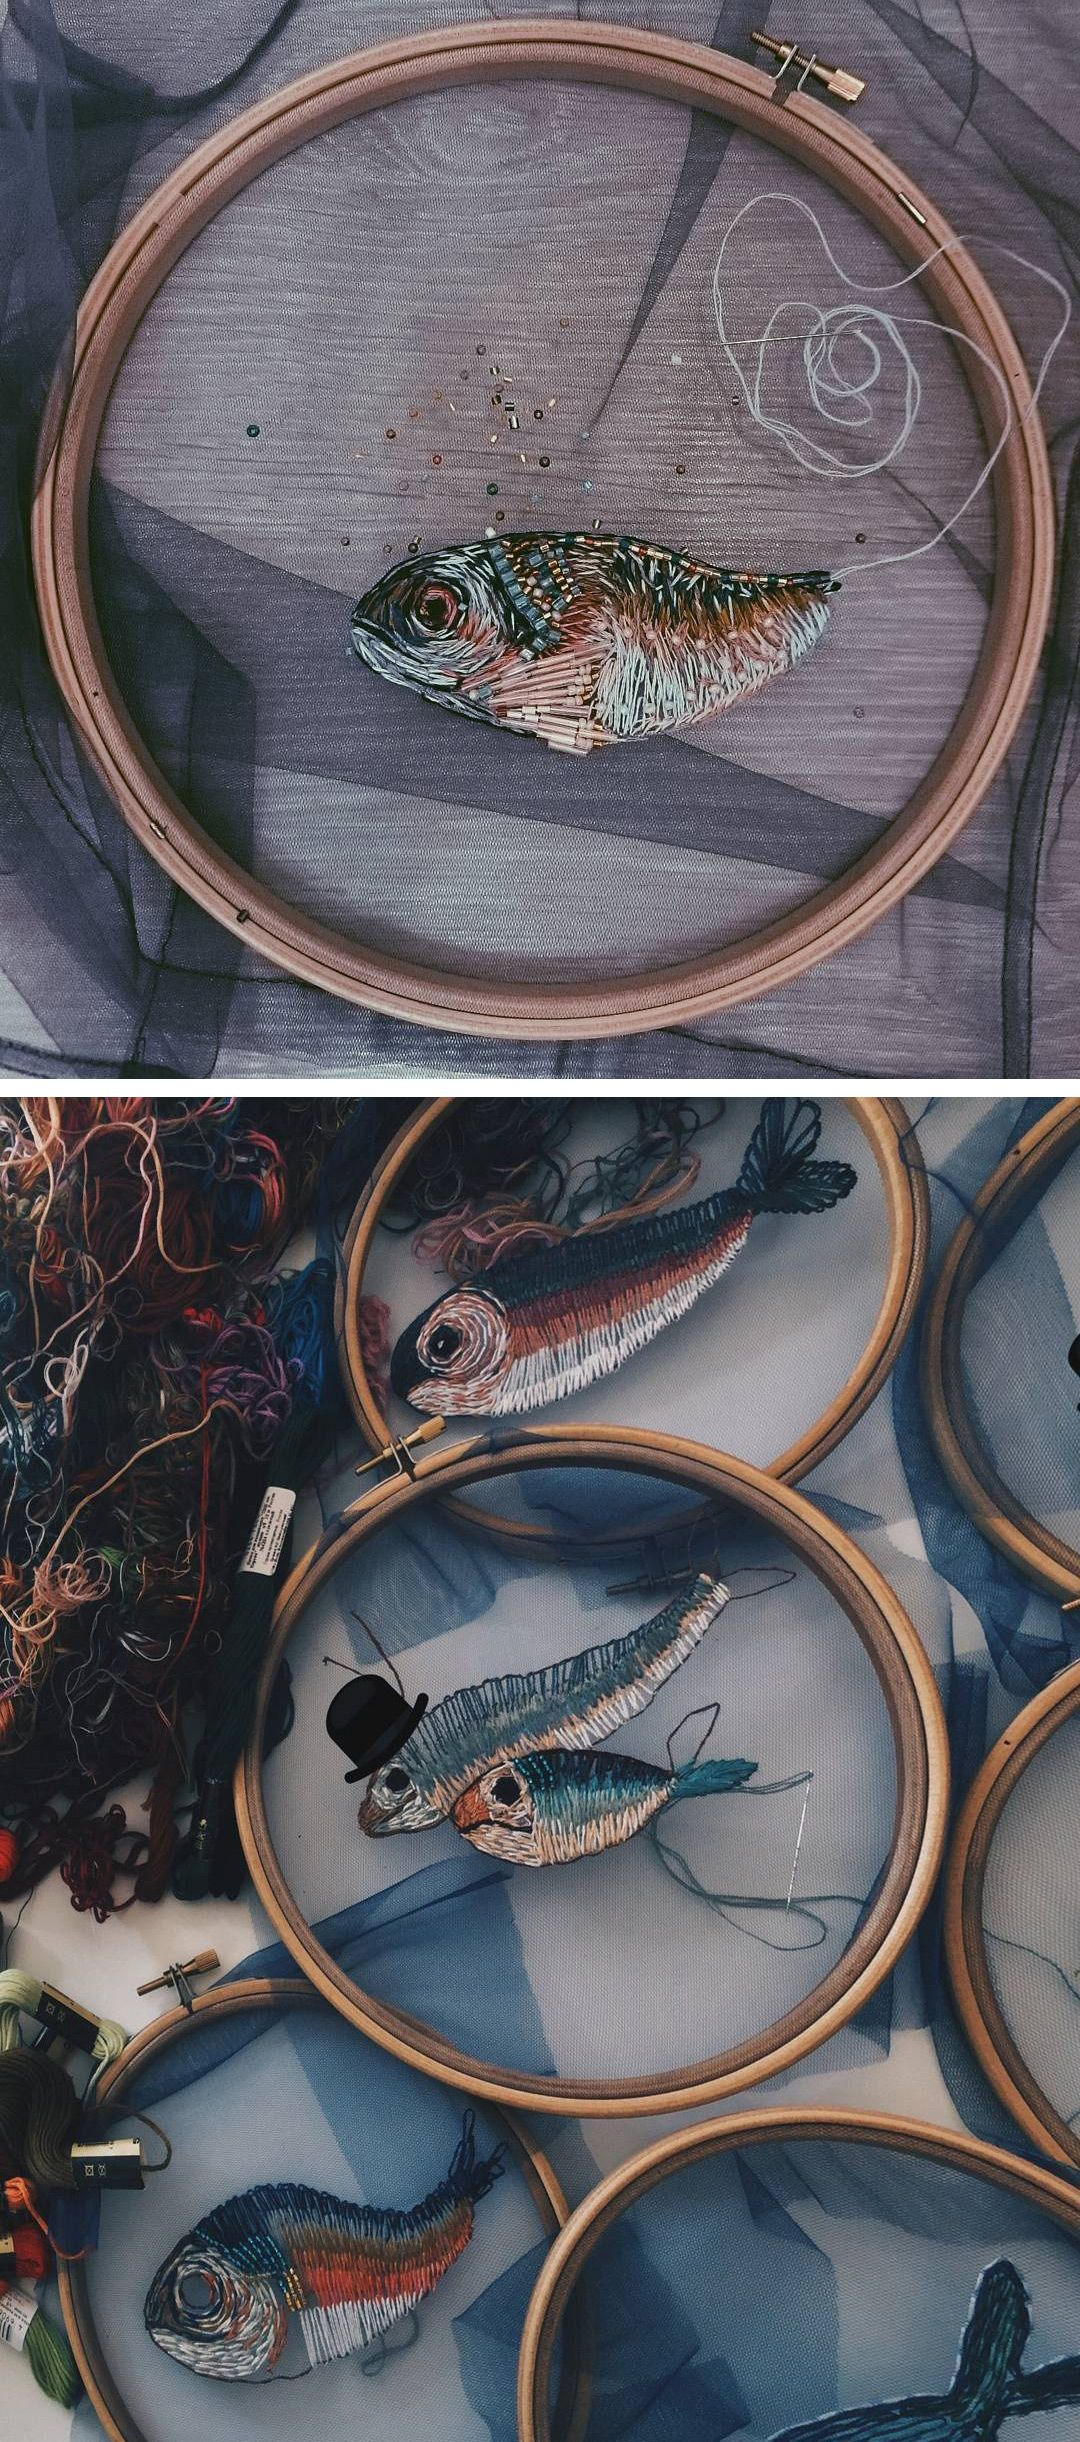 Fish embroidery on tulle // hoop art // optical illusion embroidery